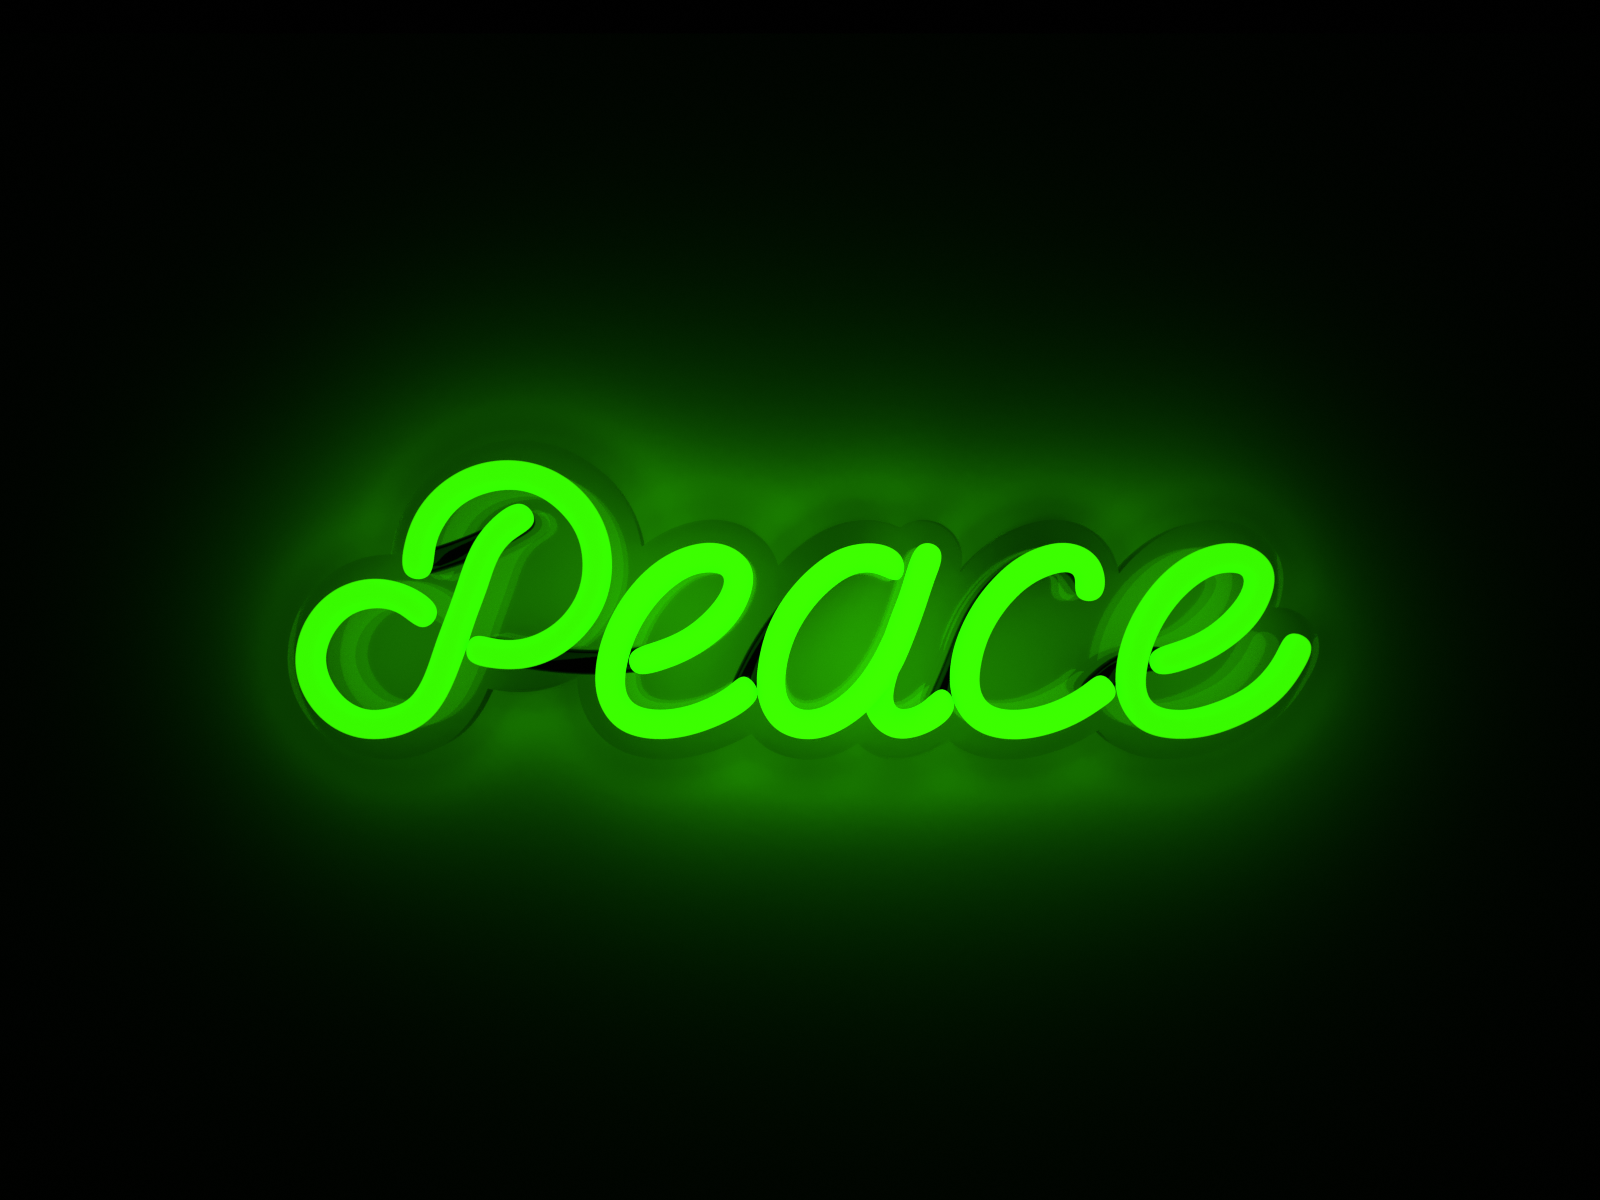 McGonagle_Peace neon_34%22x12%22.png